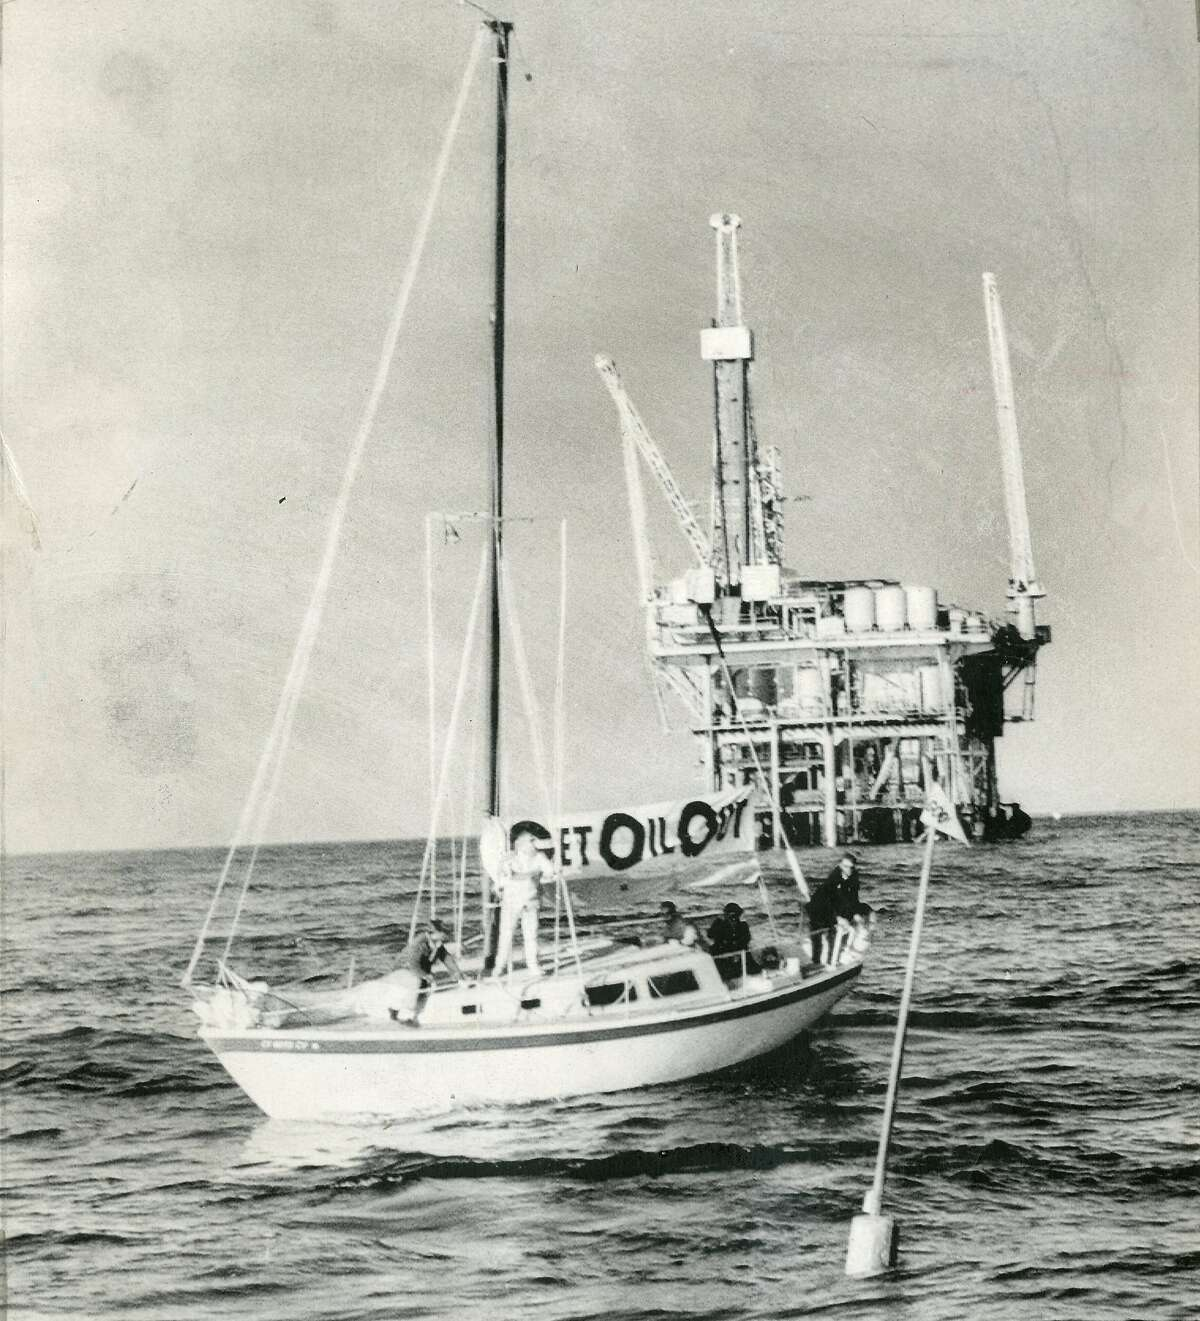 A buoy was set up in the vicinity of Union Oil Co. PLatform 4, to mark the spot where the oil spill occurred a year earlier. Ship was chartered by GOO (Get Oil Out) January 28, 1970 Associated Press photo Ran 02/15/1970, This World